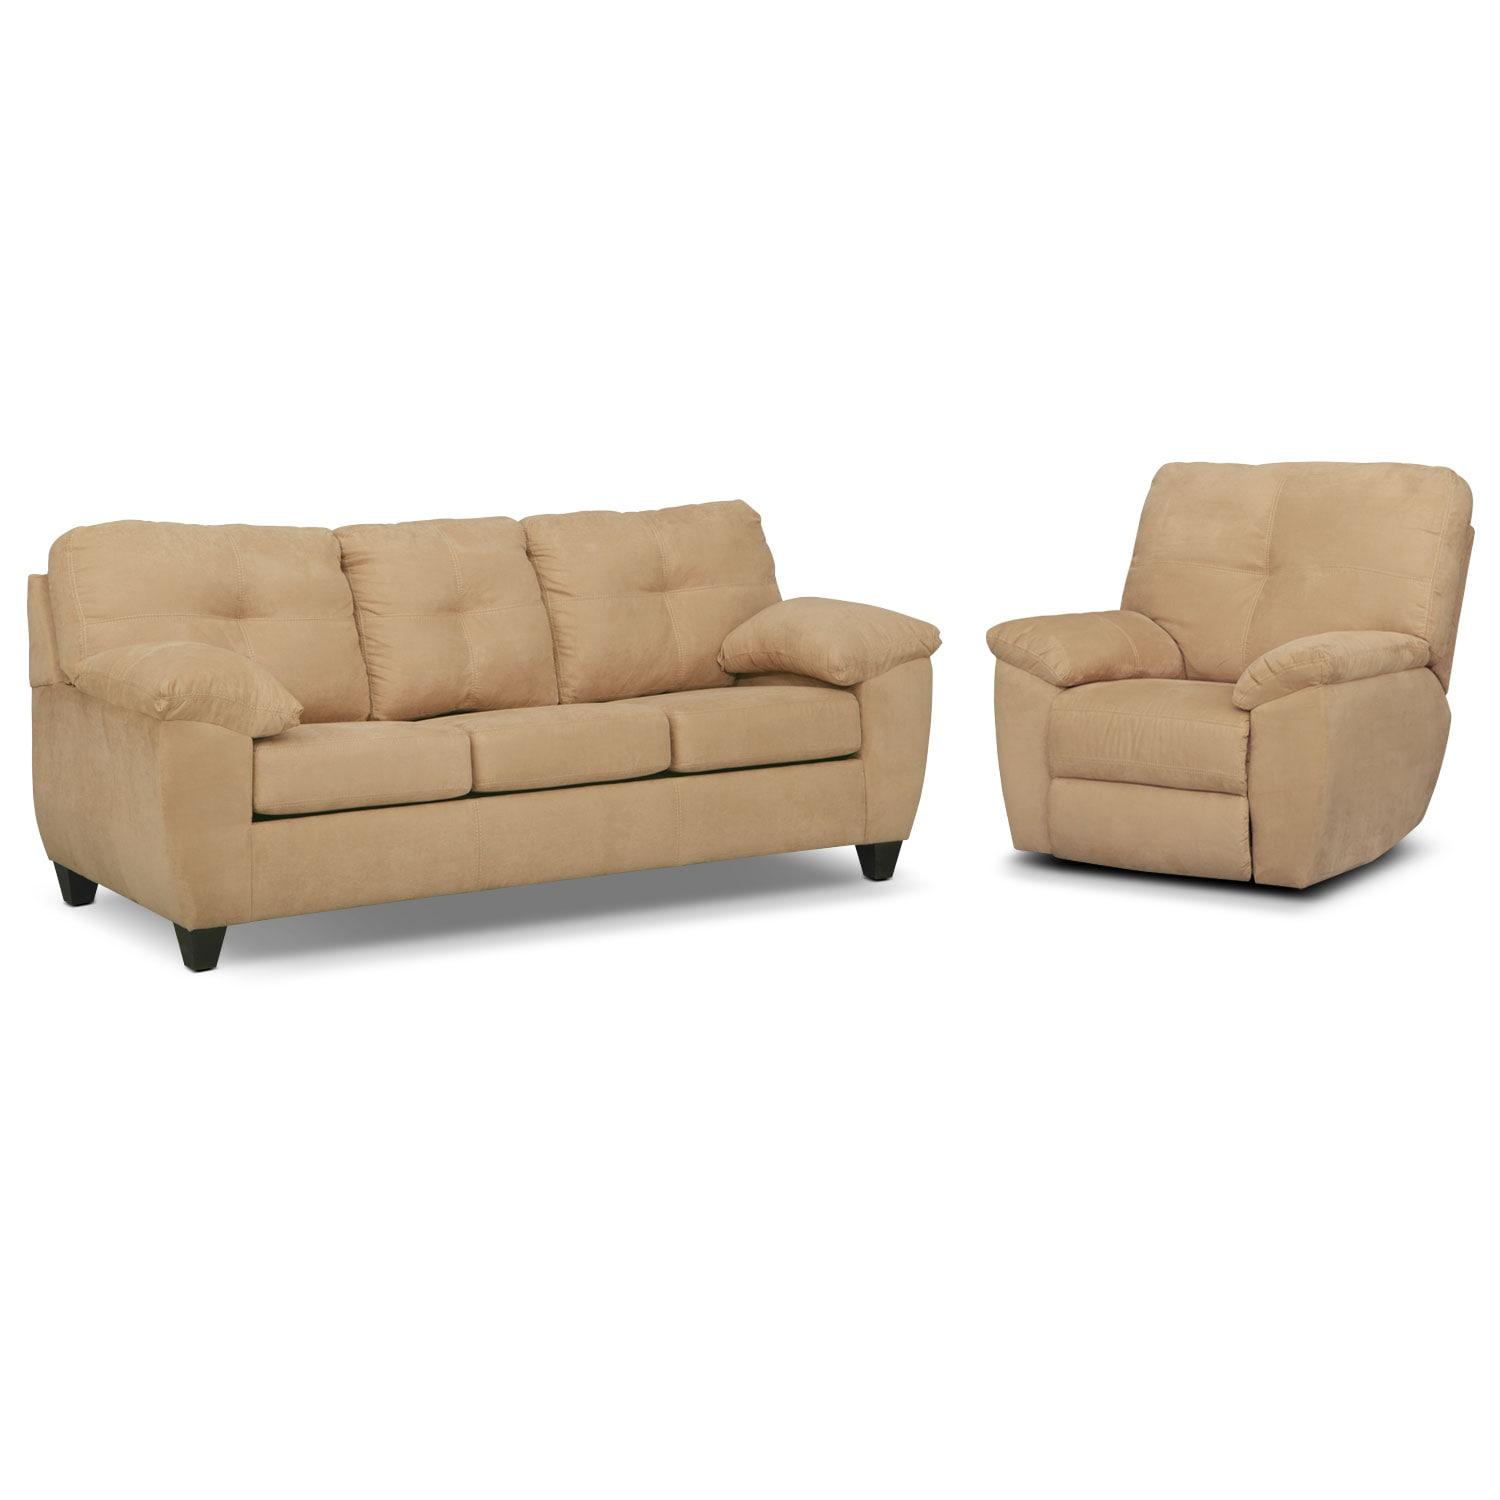 Living Room Furniture - Rialto Memory Foam Sleeper Sofa and Glider Recliner Set - Camel